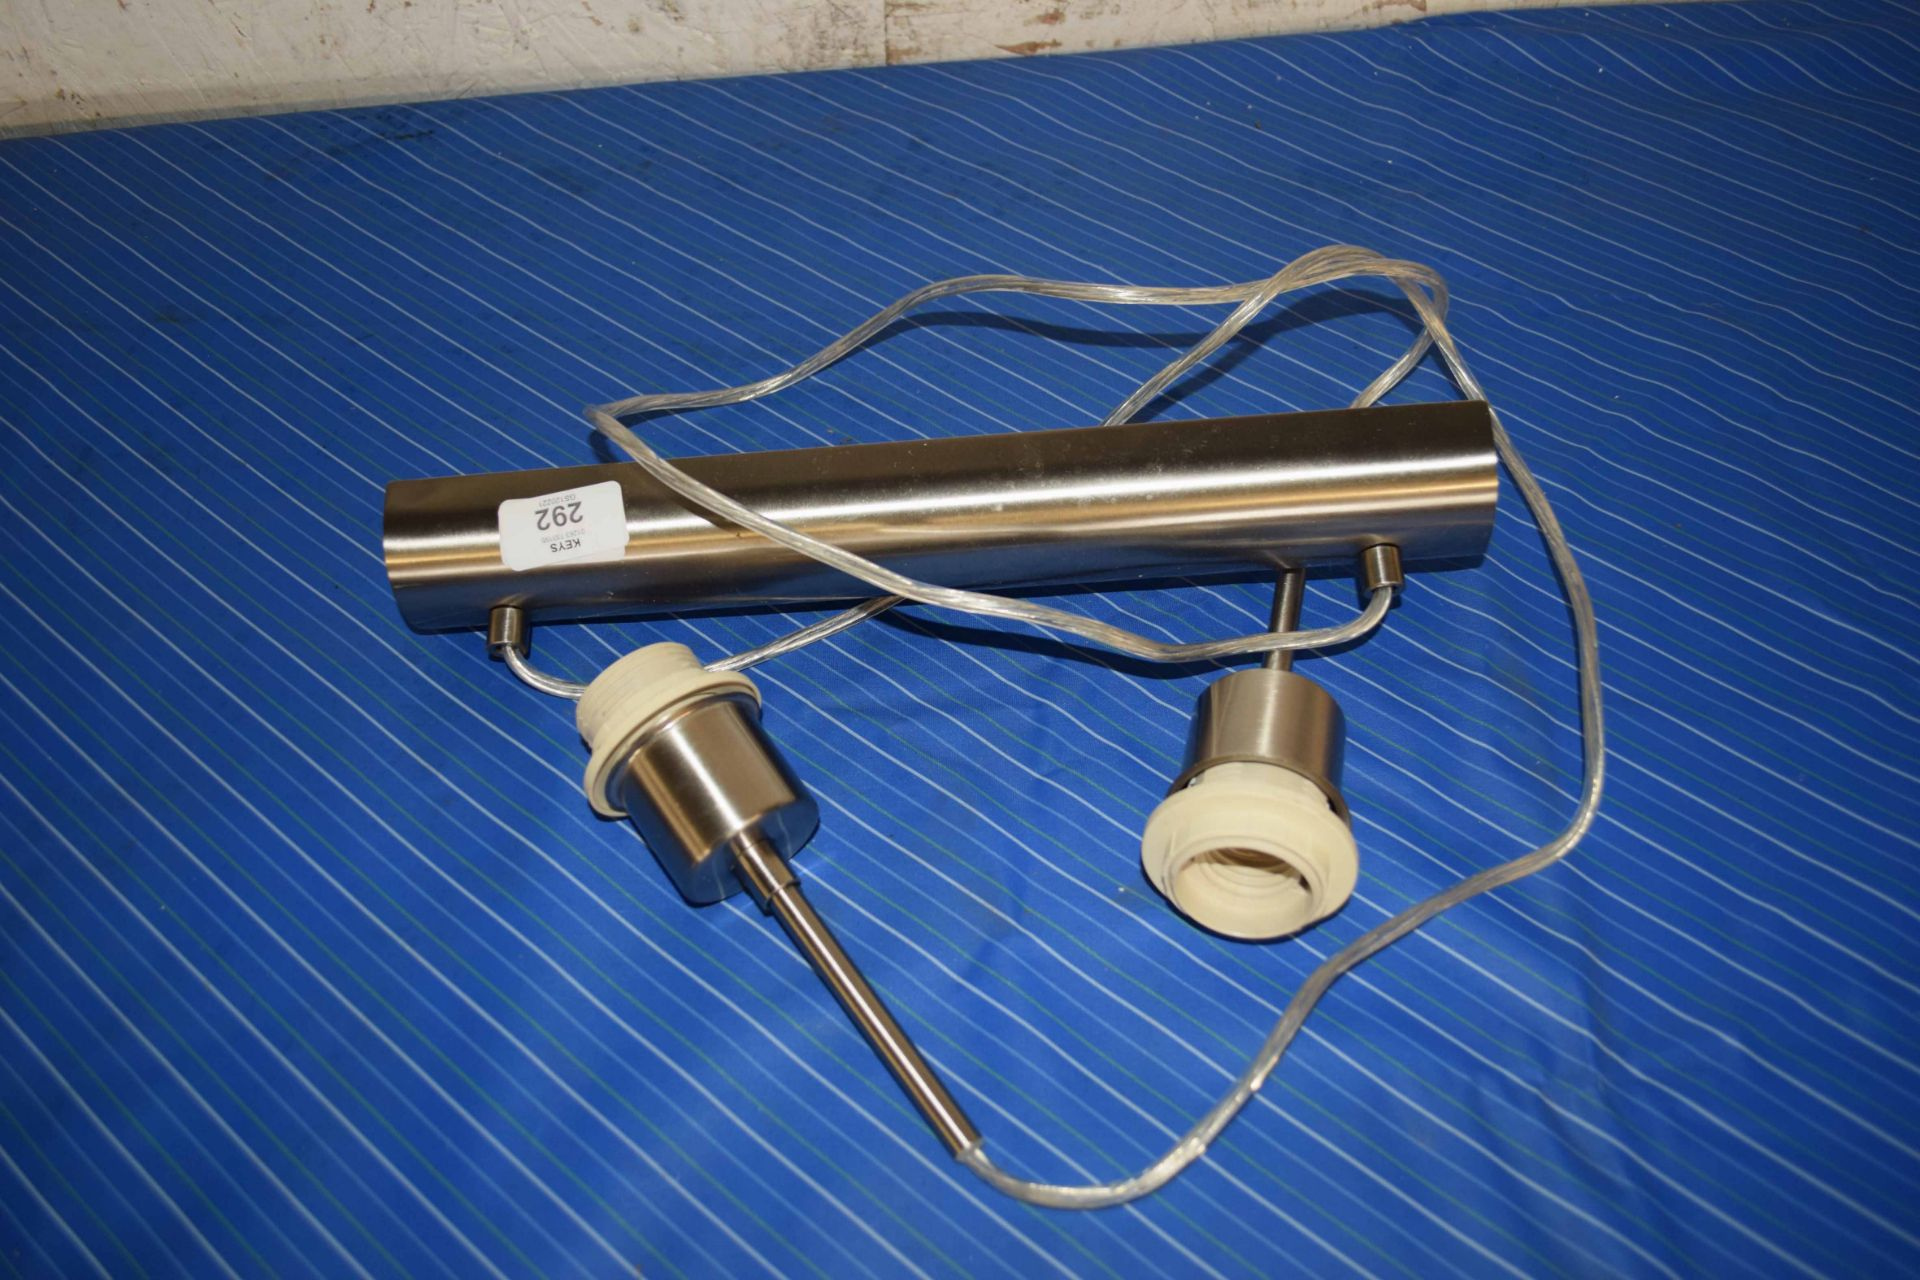 TWO BULB SUSPENDED CEILING LIGHT FITTING, APPROX 30CM